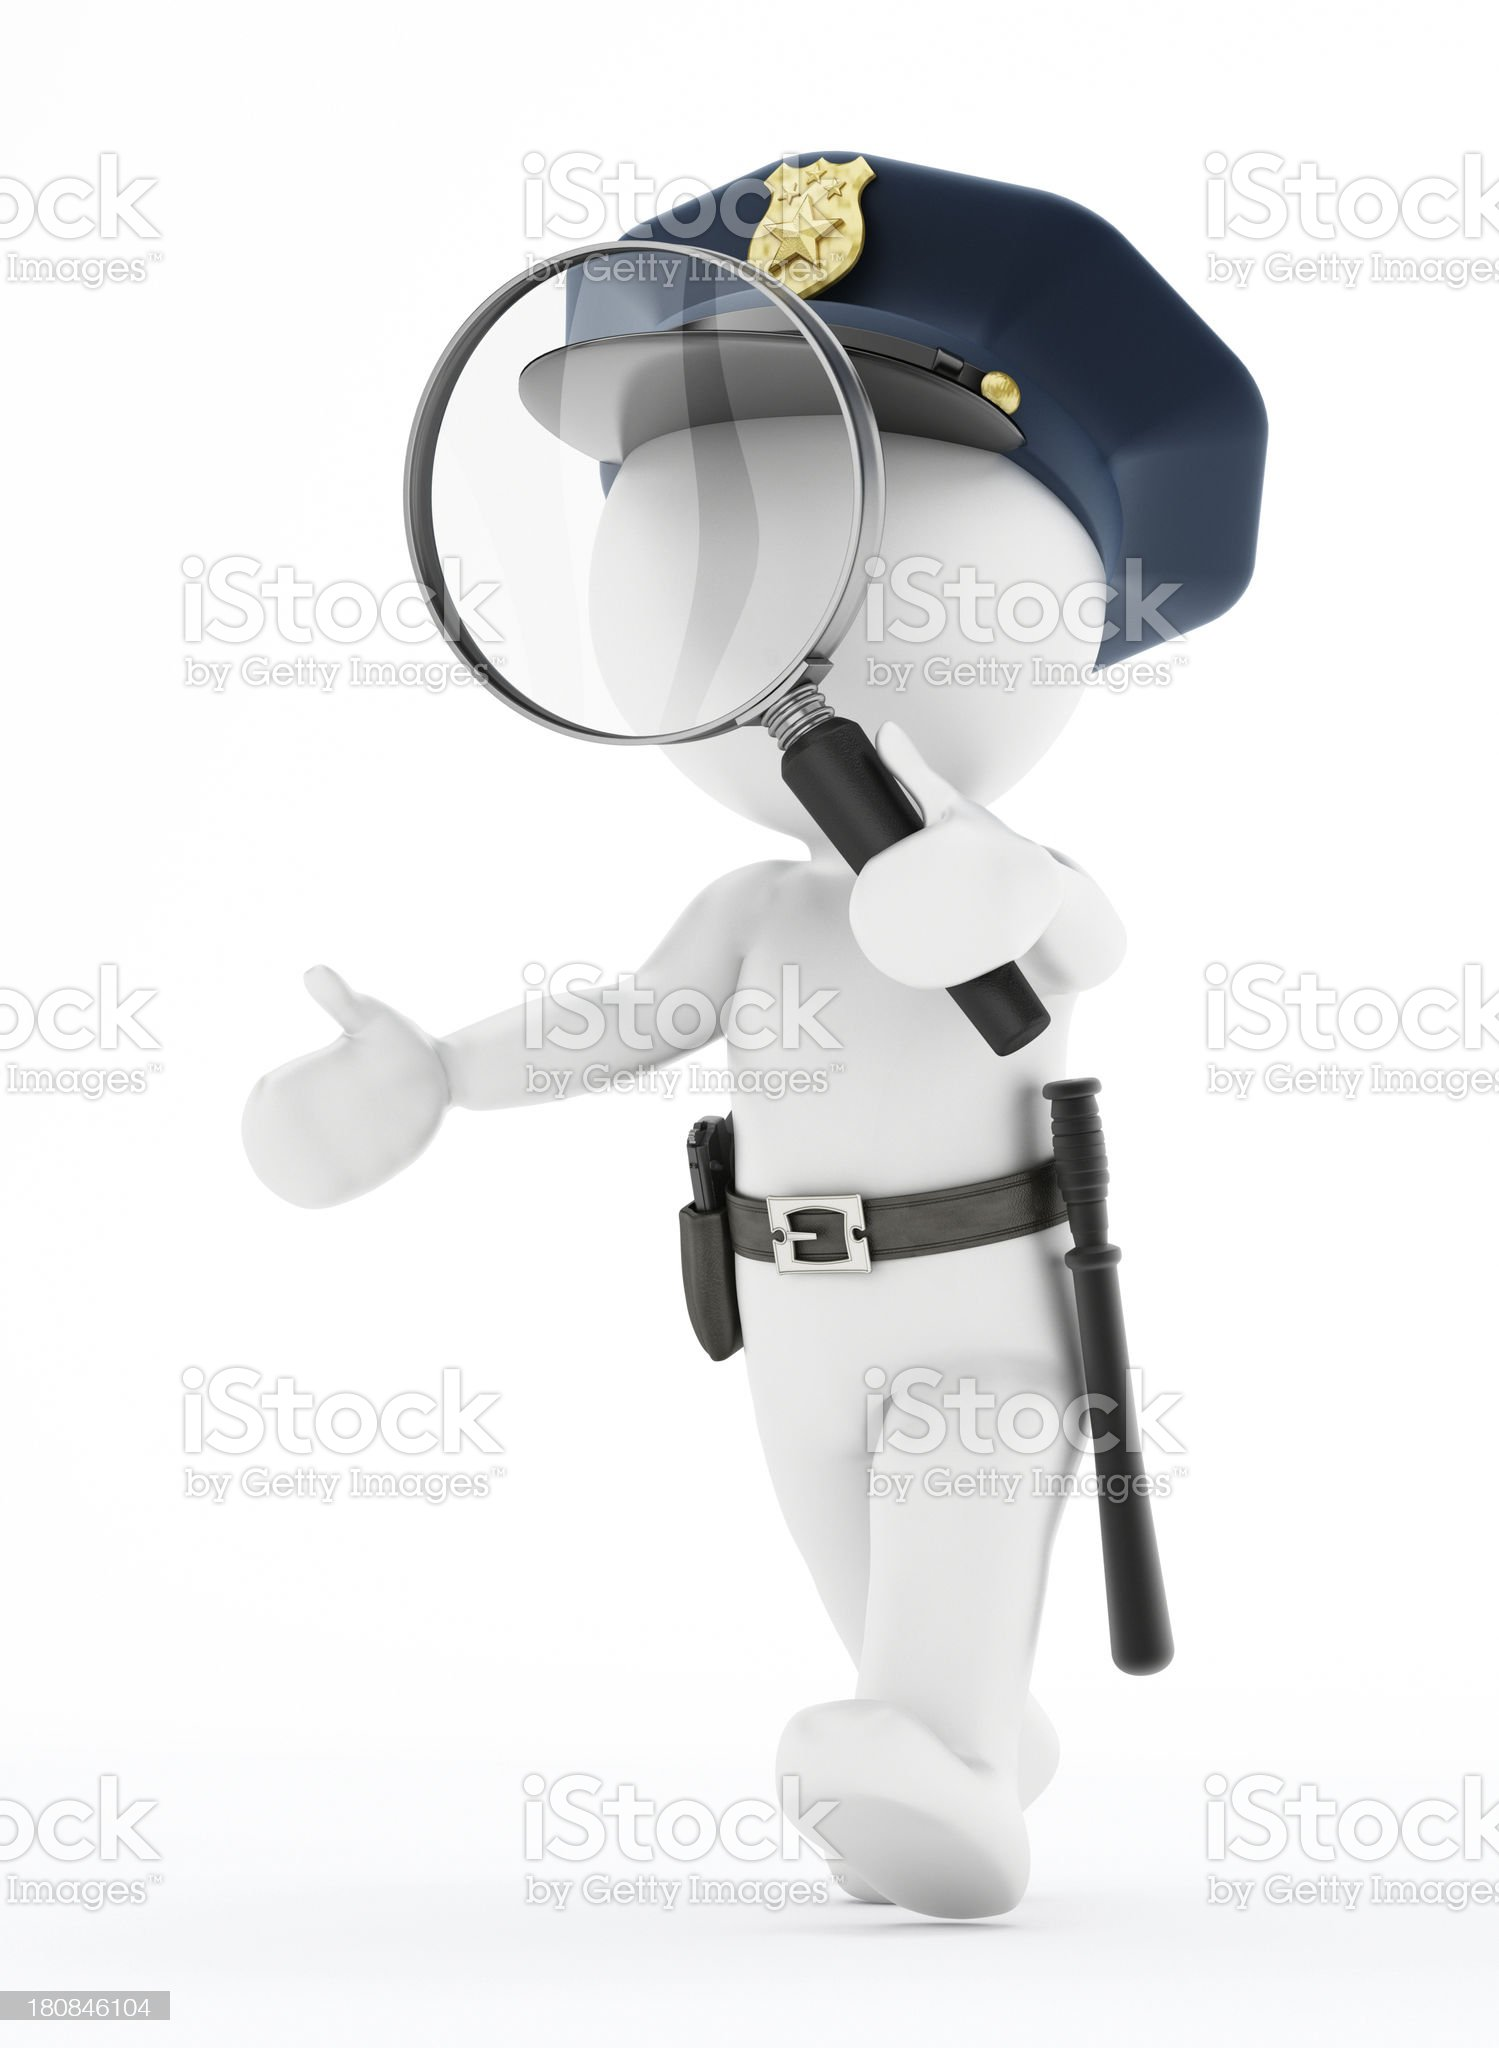 Police search royalty-free stock photo